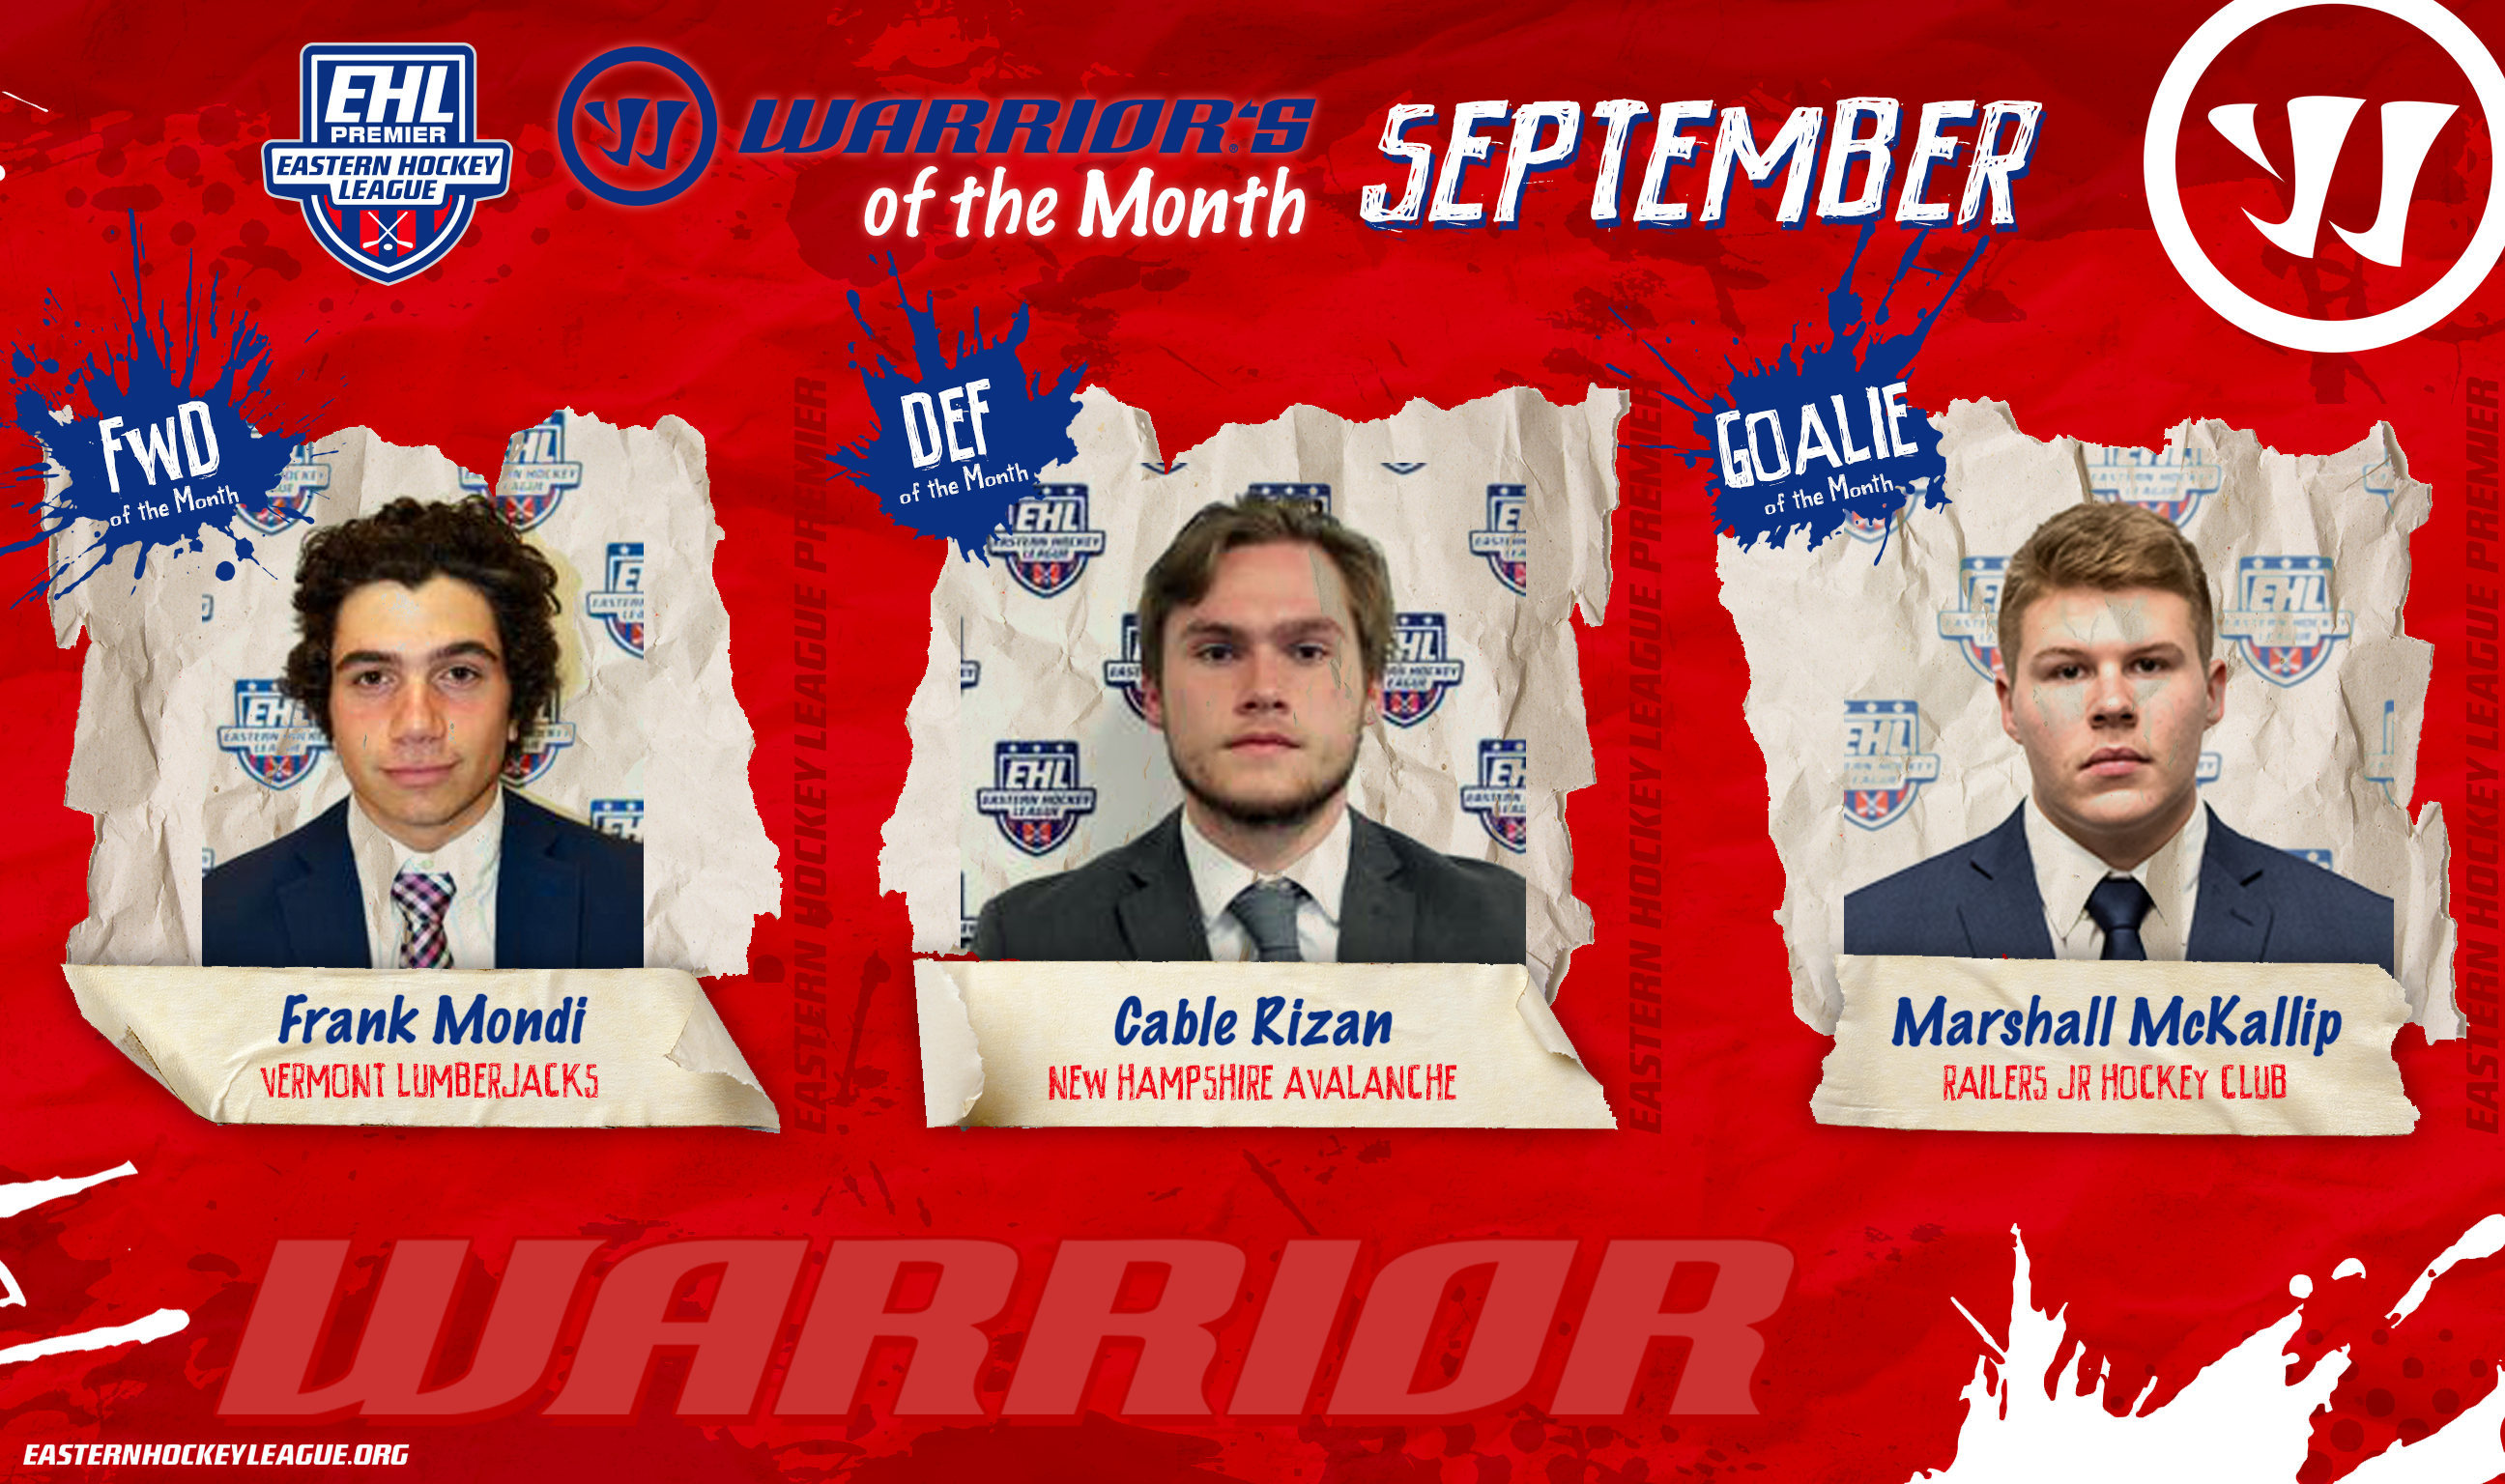 EHLP Stars of the Month